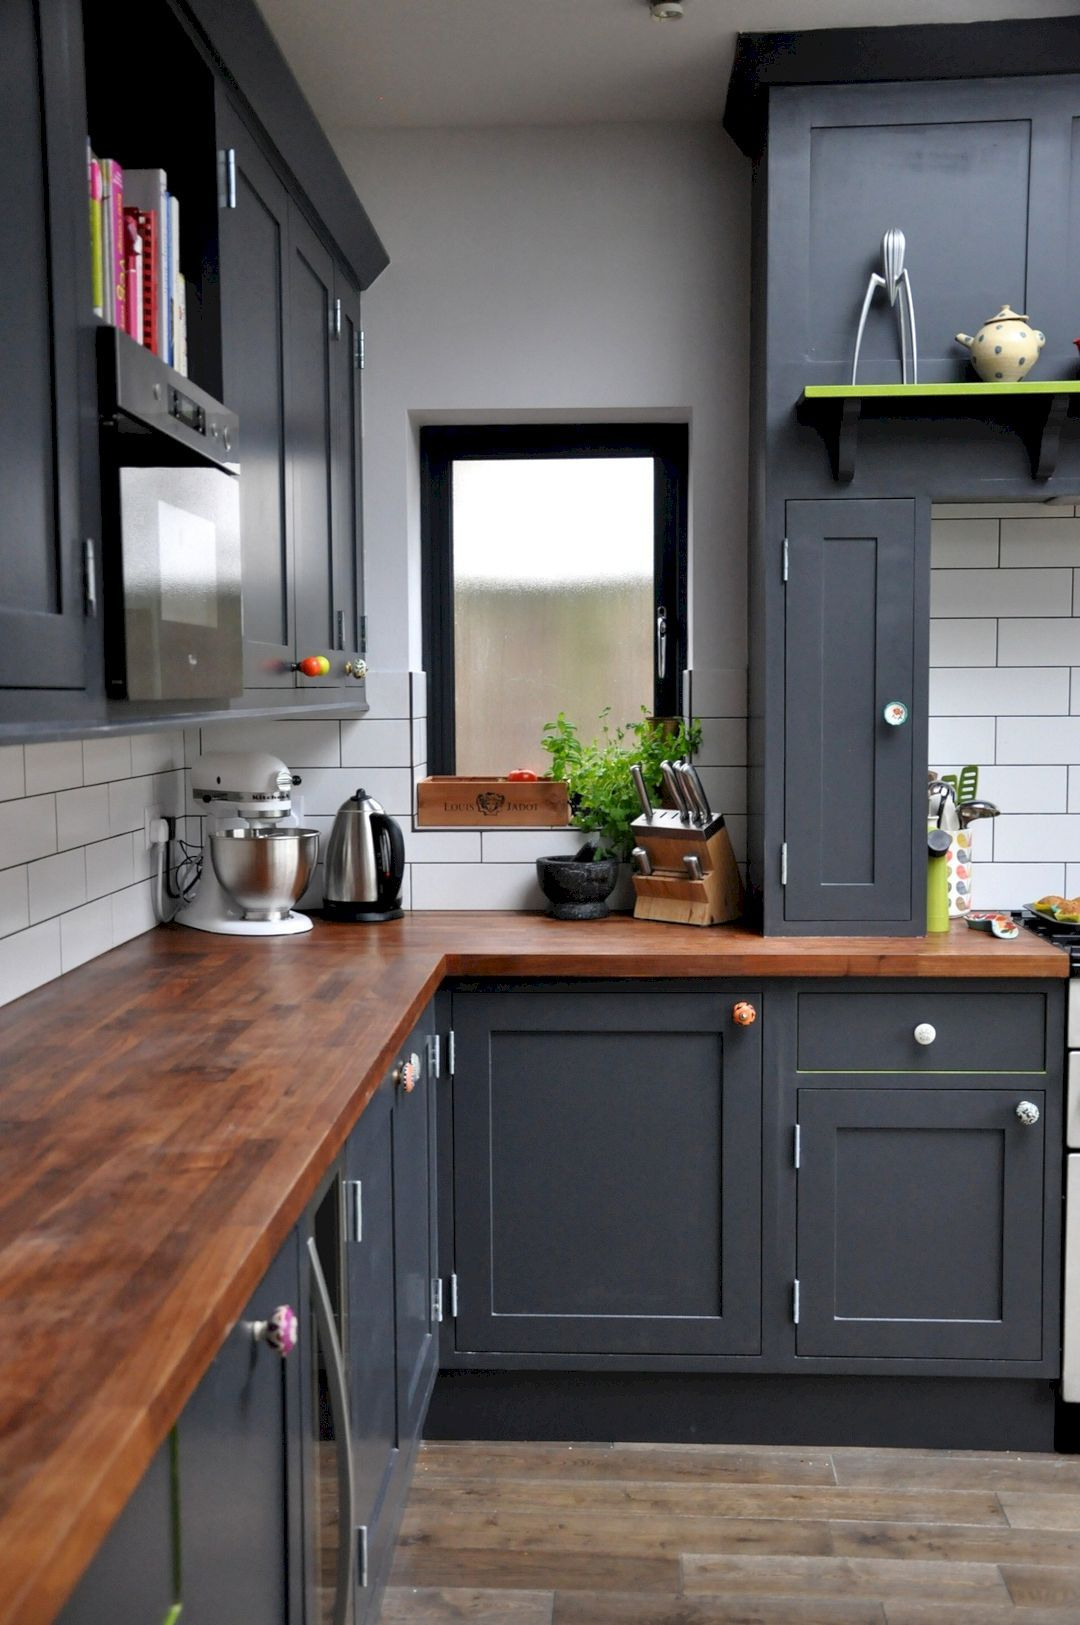 Recall Casa The Residential Of A Couple With Industrial Style And Vintage Interior Design American Kitchen Design Kitchen Design Kitchen Cabinets Makeover